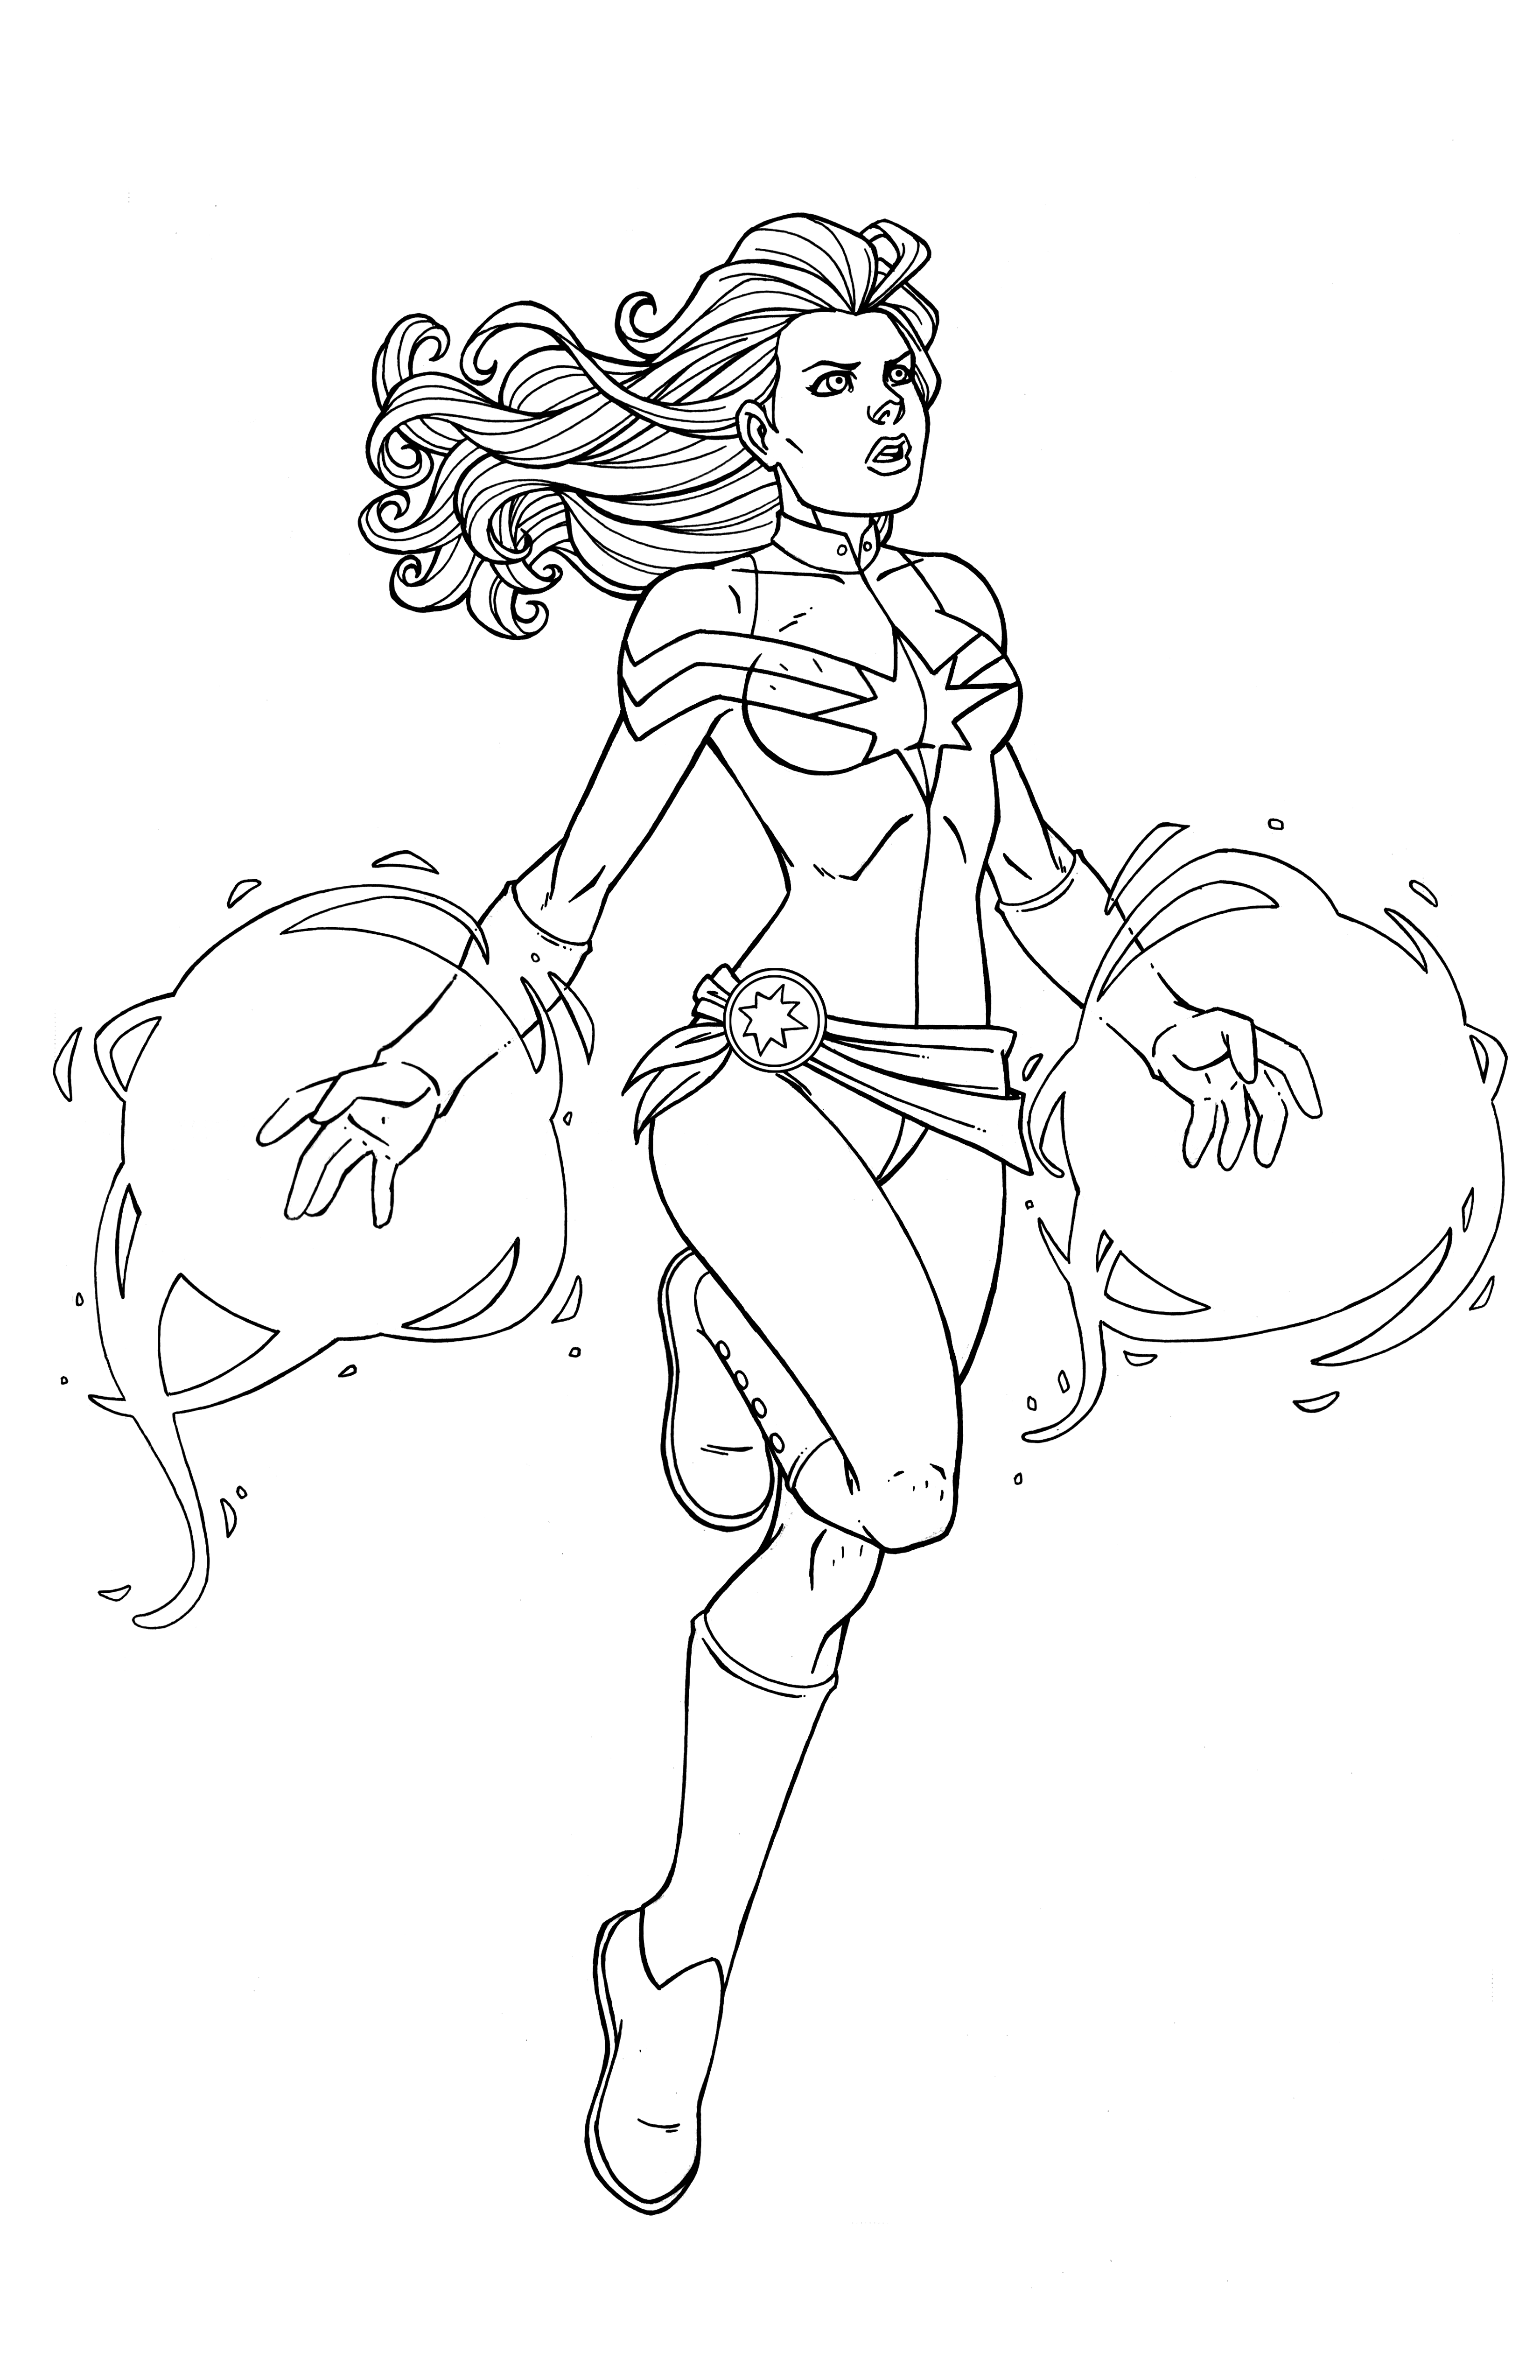 Captain Marvel By Jamiefayx Deviantart Com On Deviantart Marvel Coloring Avengers Coloring Superhero Coloring Pages